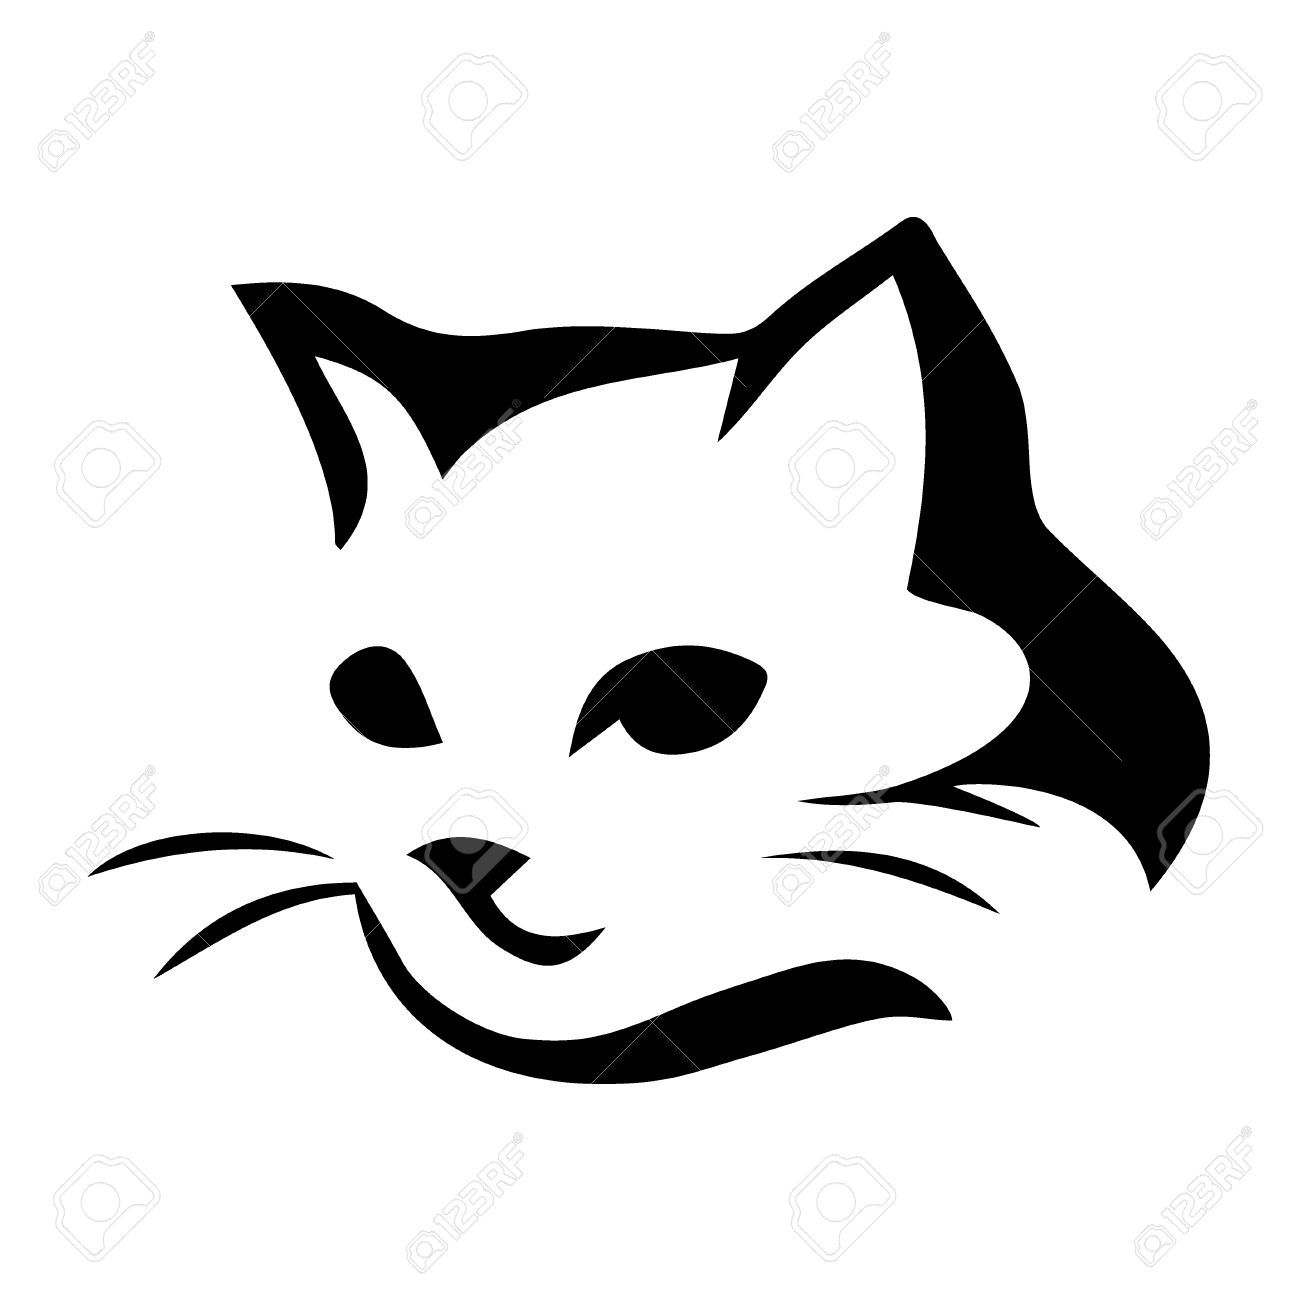 Black And White Cat Icon 92107 Free Icons Library Cartoon Cat Drawing Cat Tattoo Black Cat Tattoos